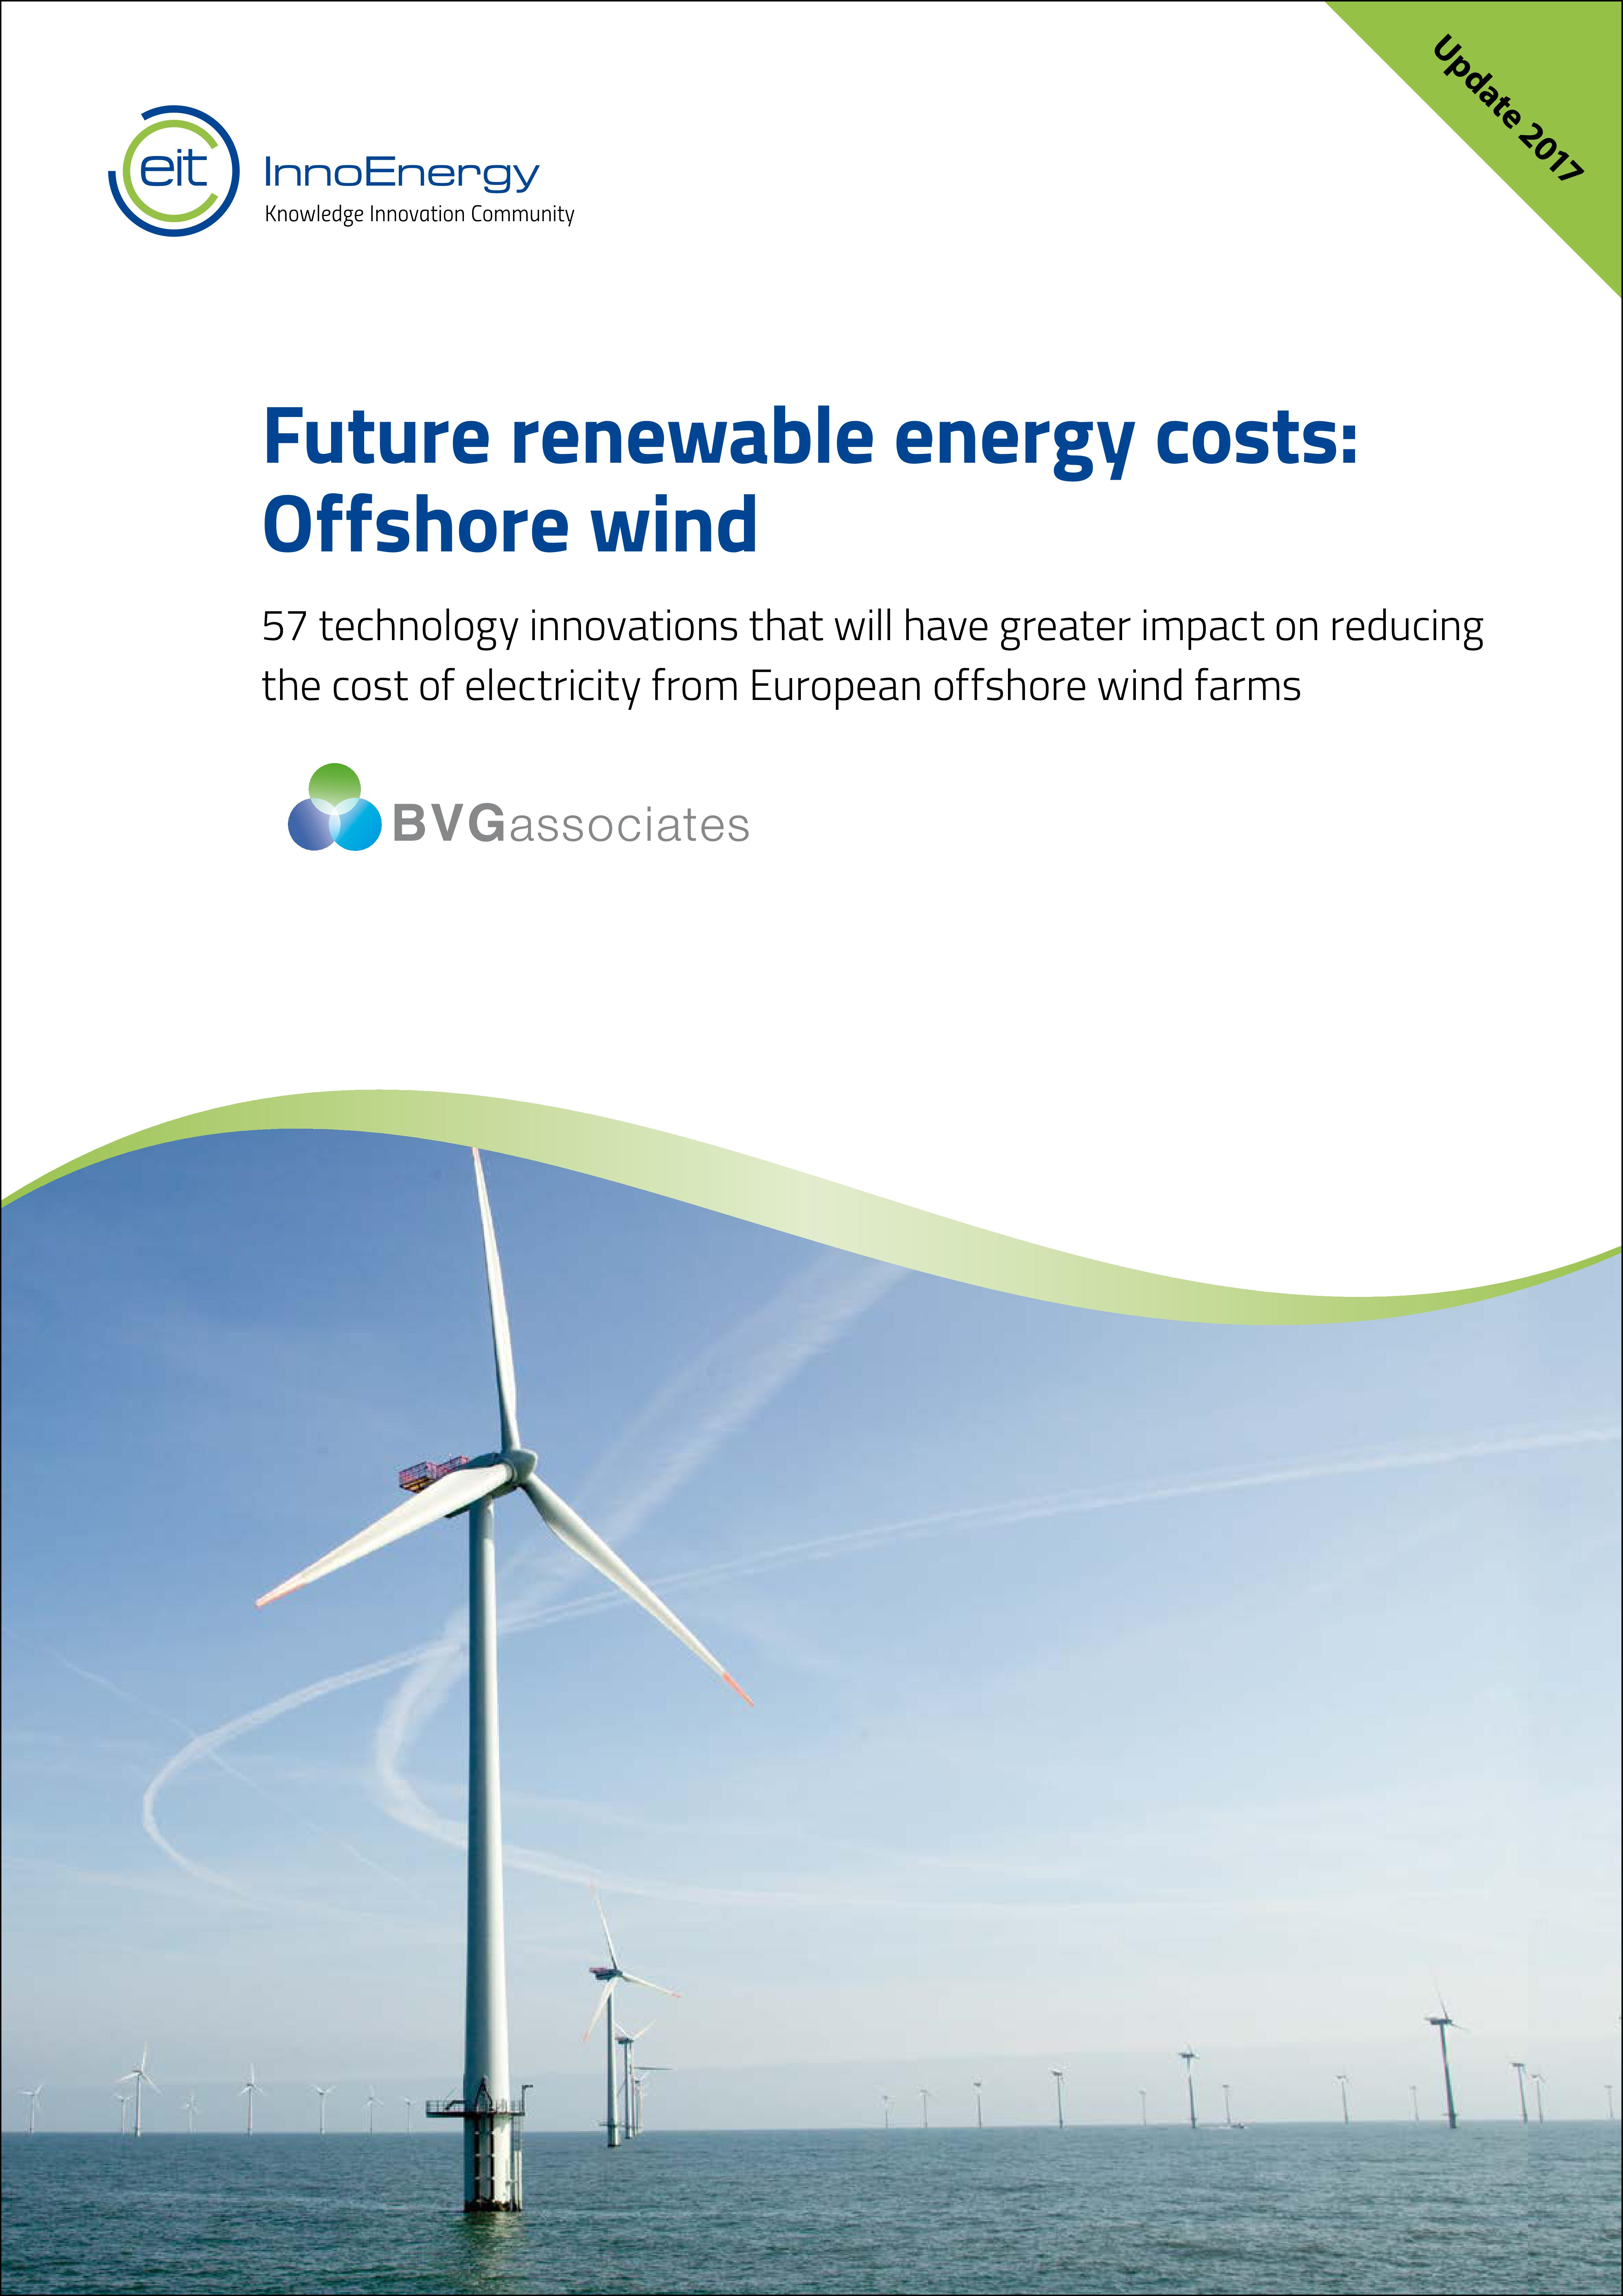 Updated future costs of energy for offshore wind BVG Associates